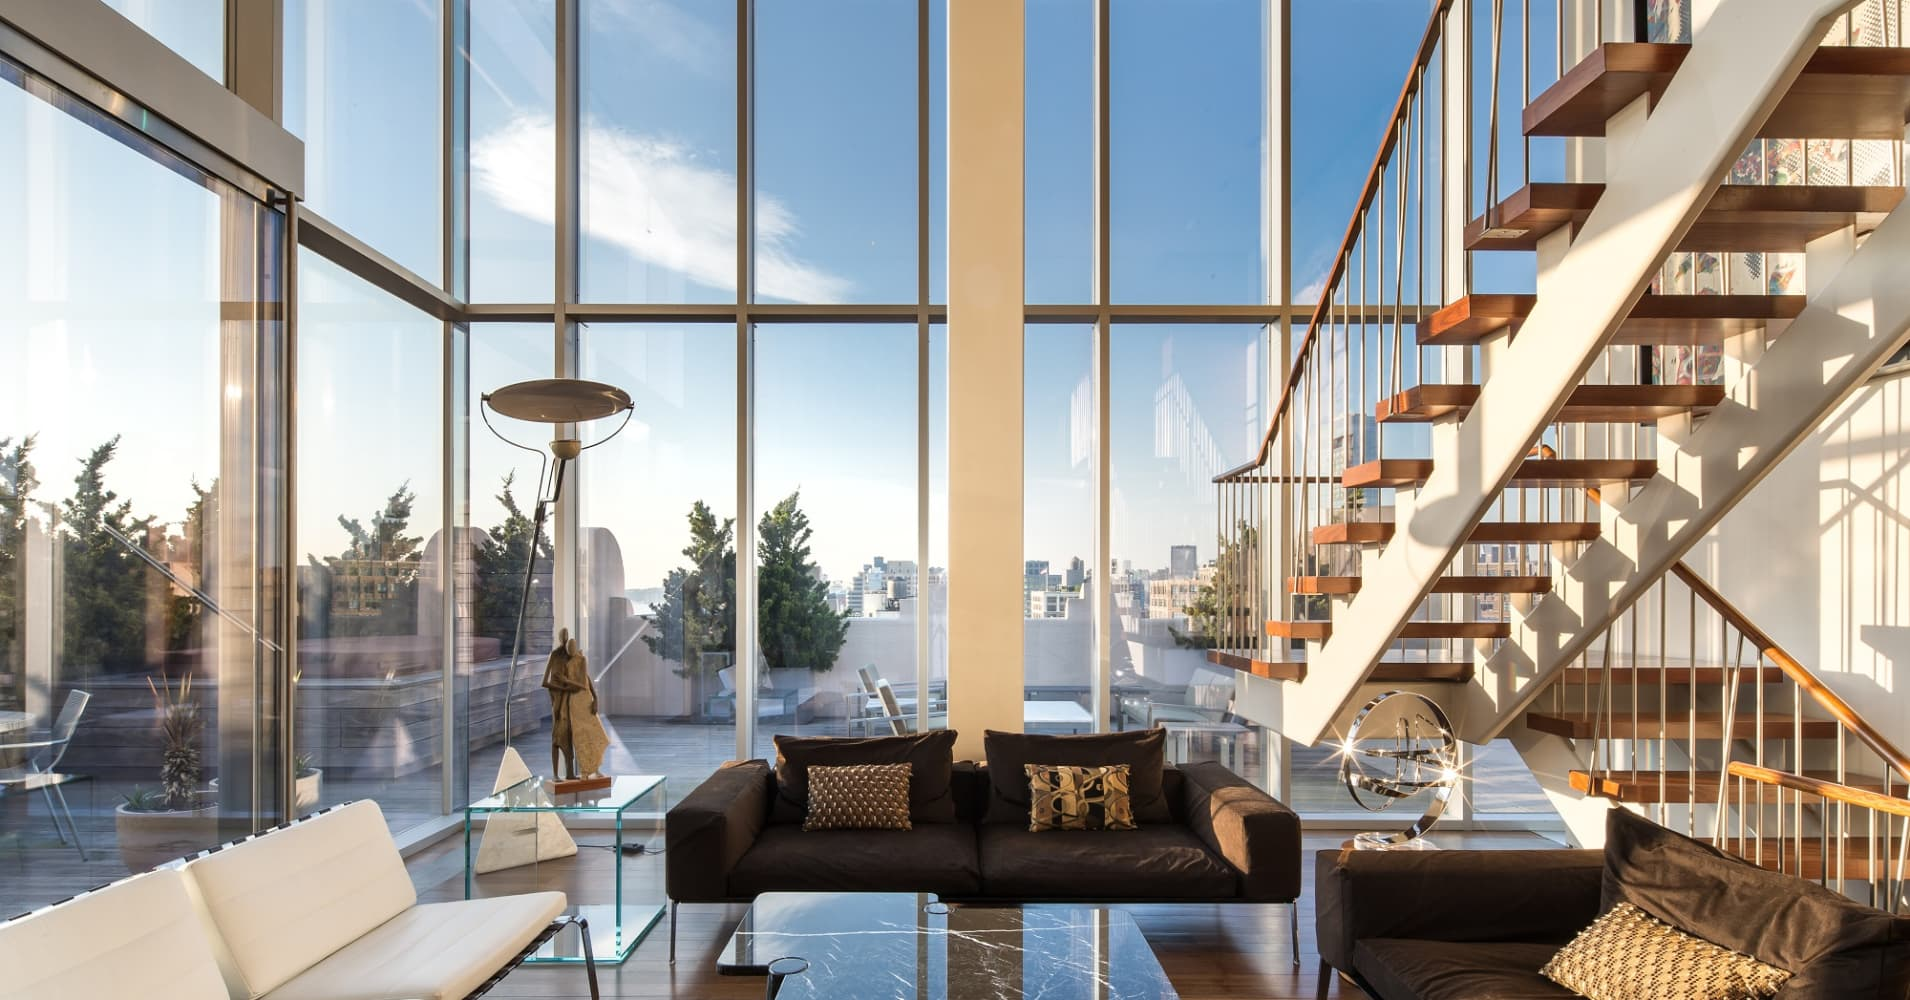 This is the real $45 million NYC penthouse Axe lives in on 'Billions' — take a look inside